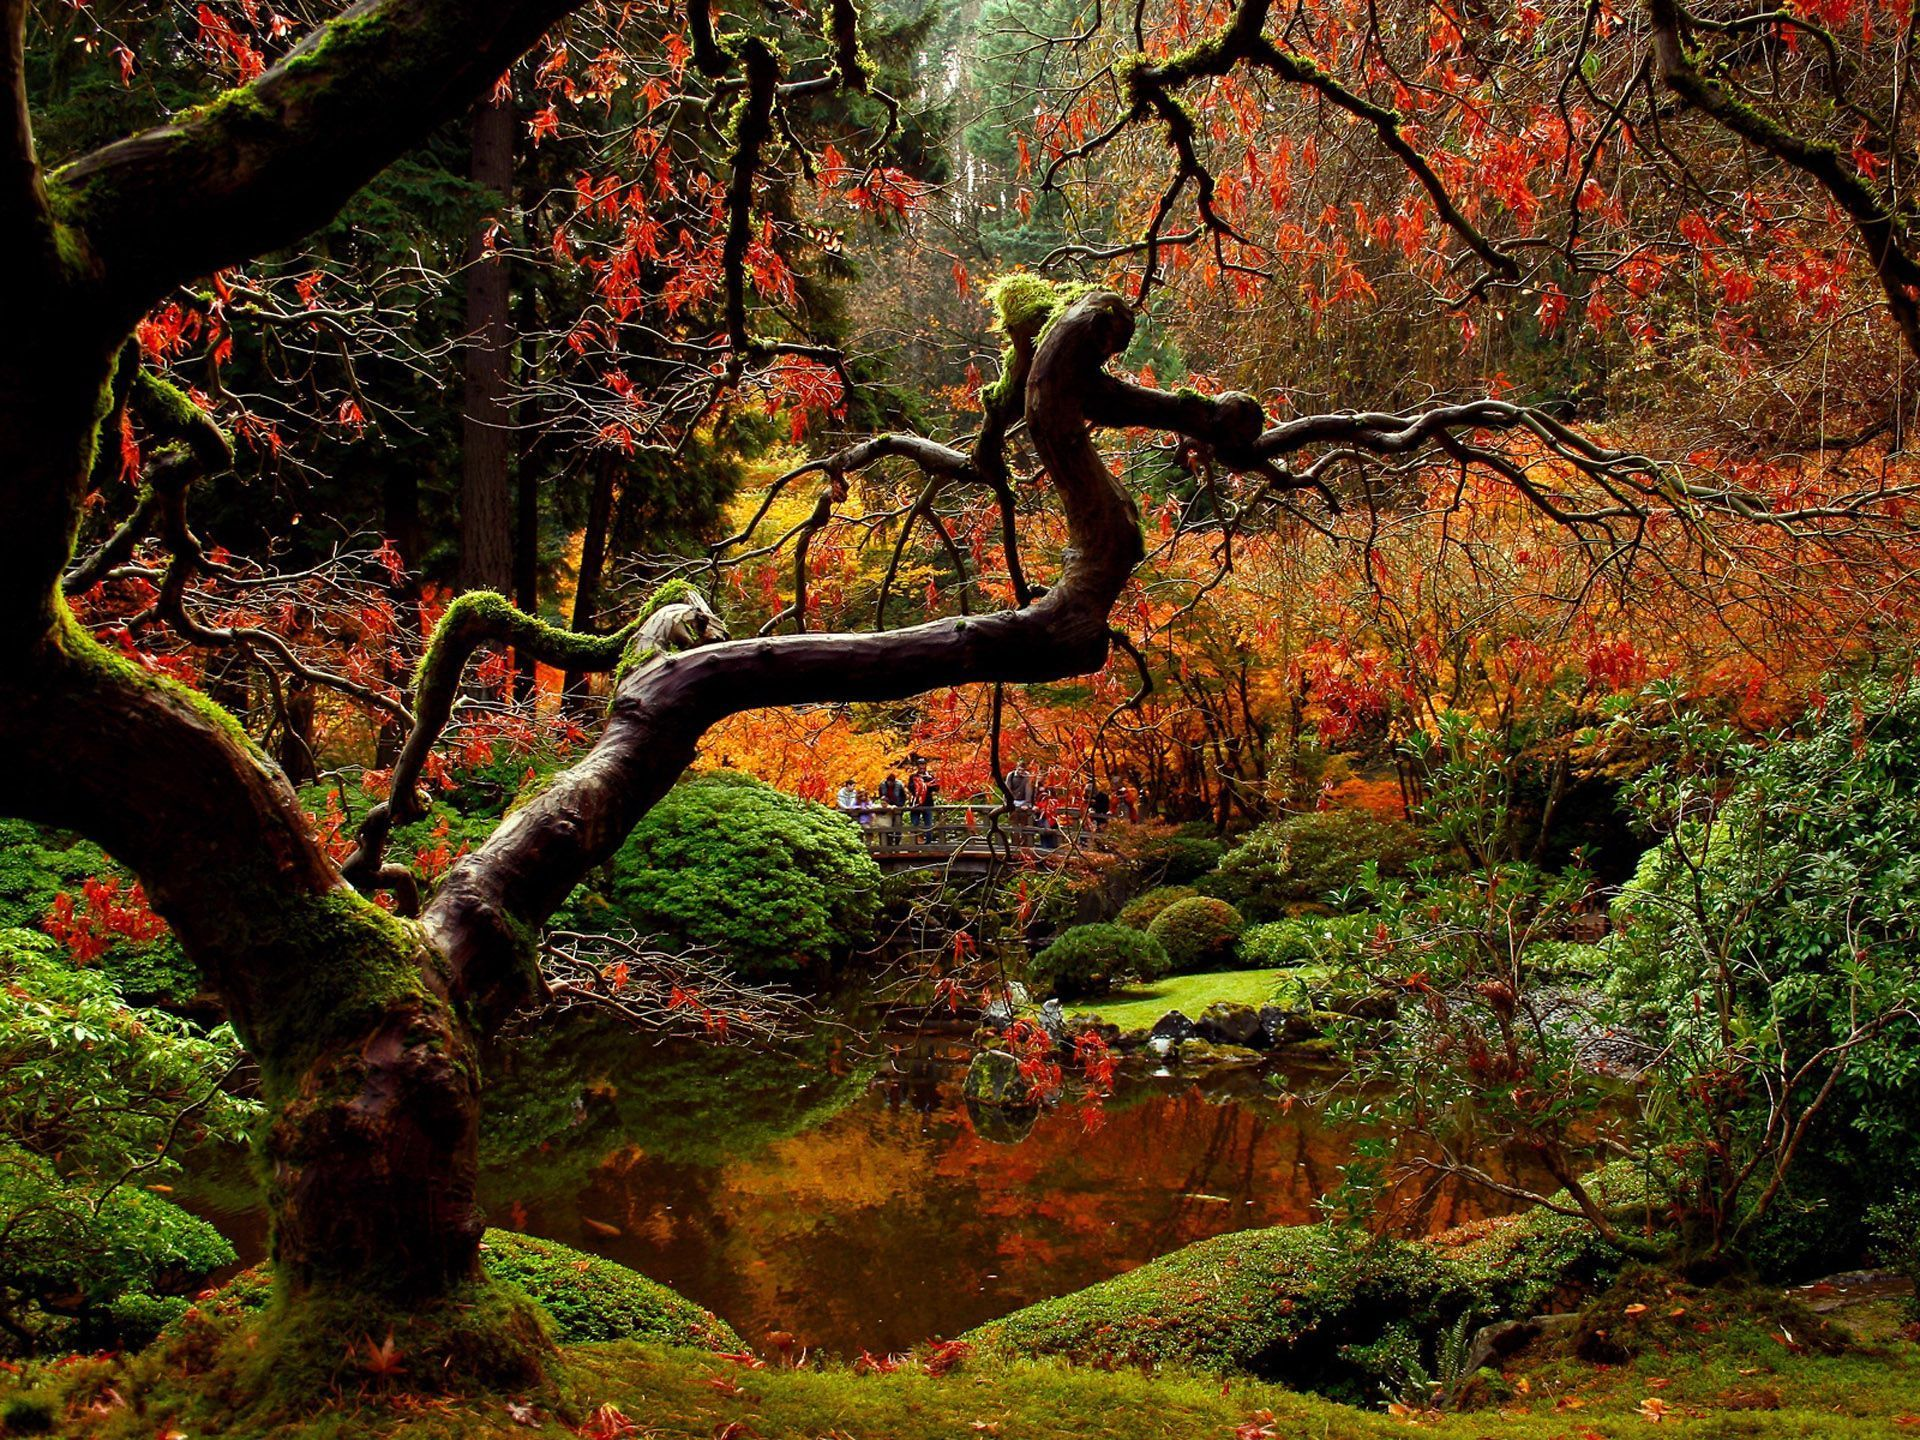 Breathtaking Fall Garden,wish I could be there right now ...